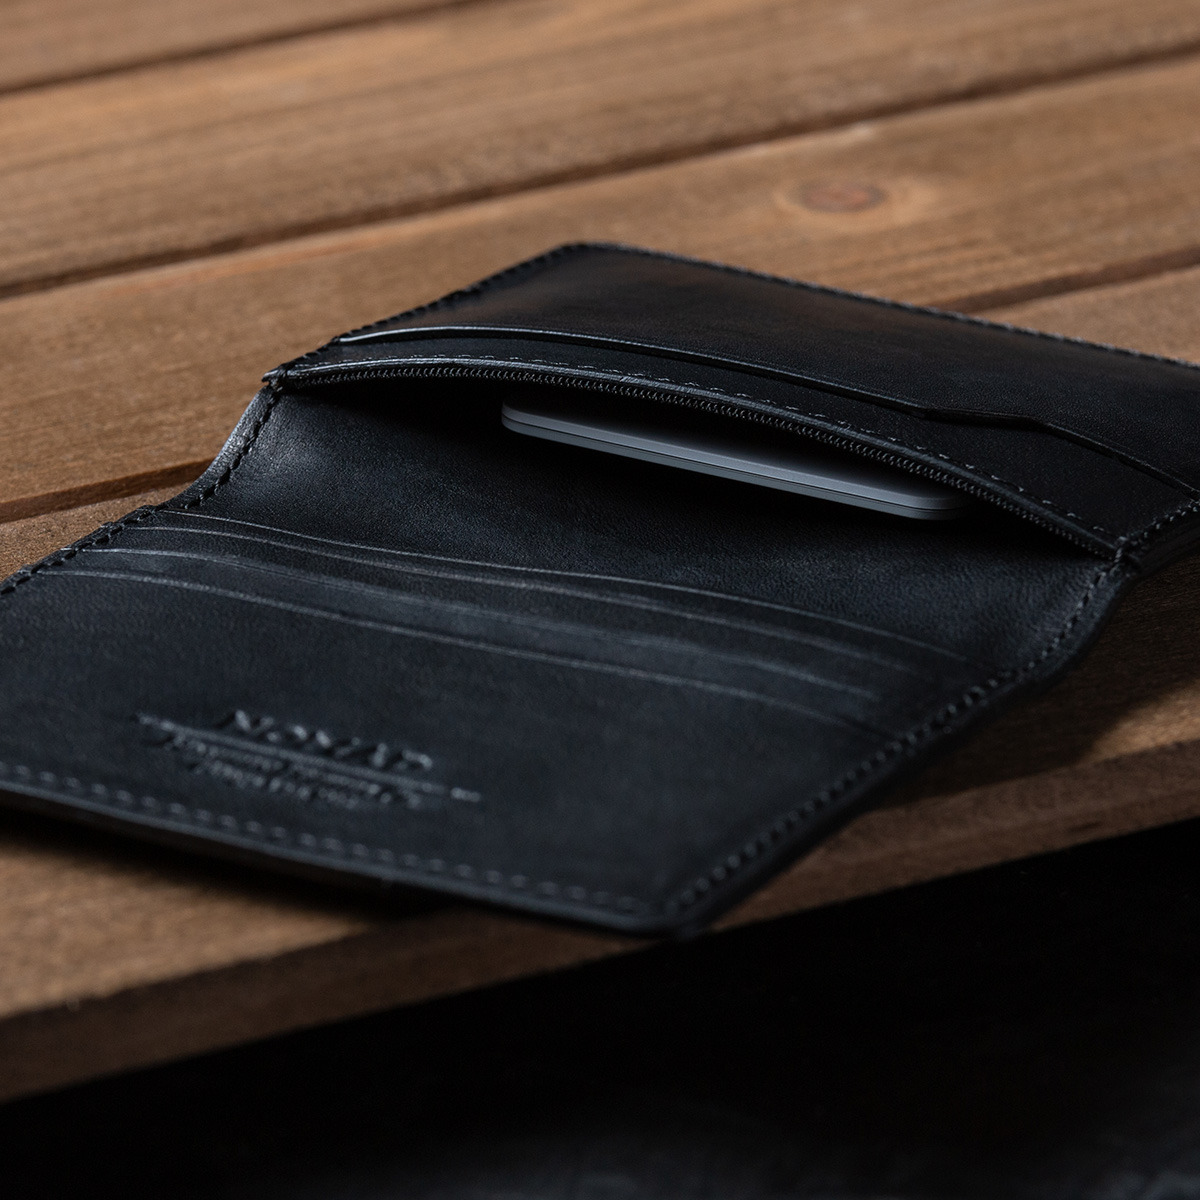 black Nomad Tile Wallet's stealth pocket where the Tile tracker is securely hidden